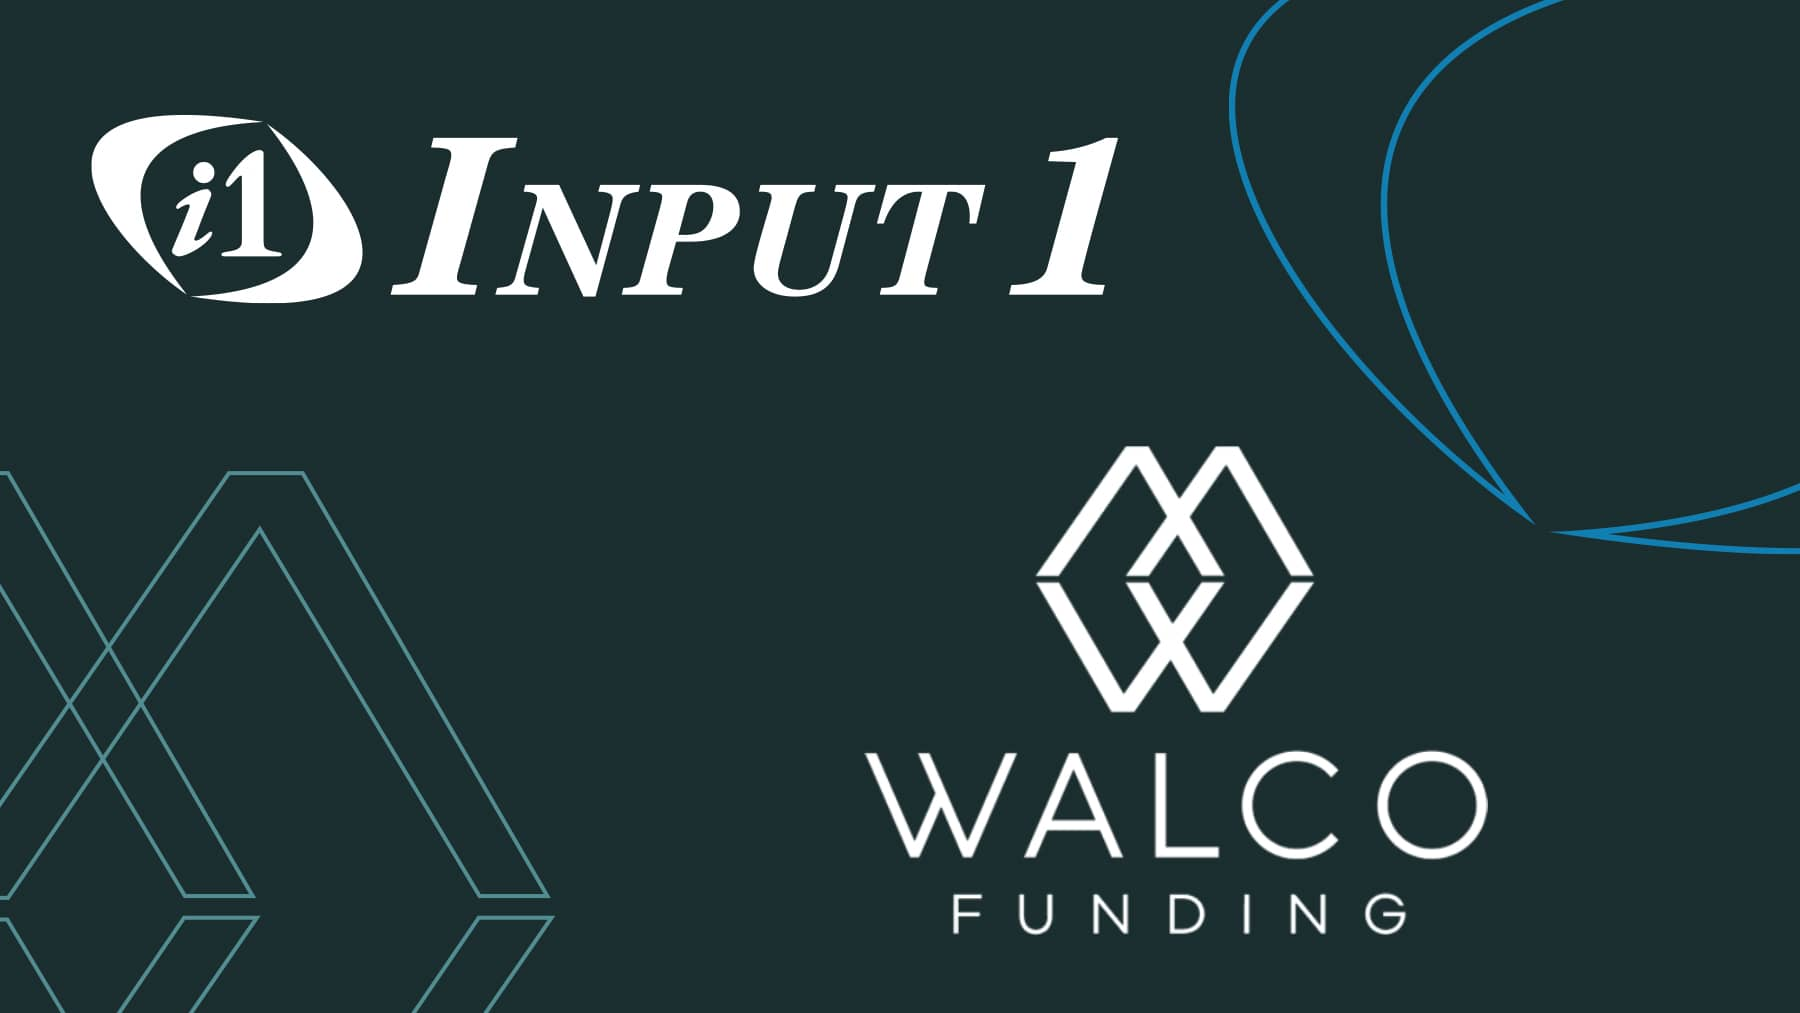 WALCO Funding selects Input 1 as servicing and technology partner